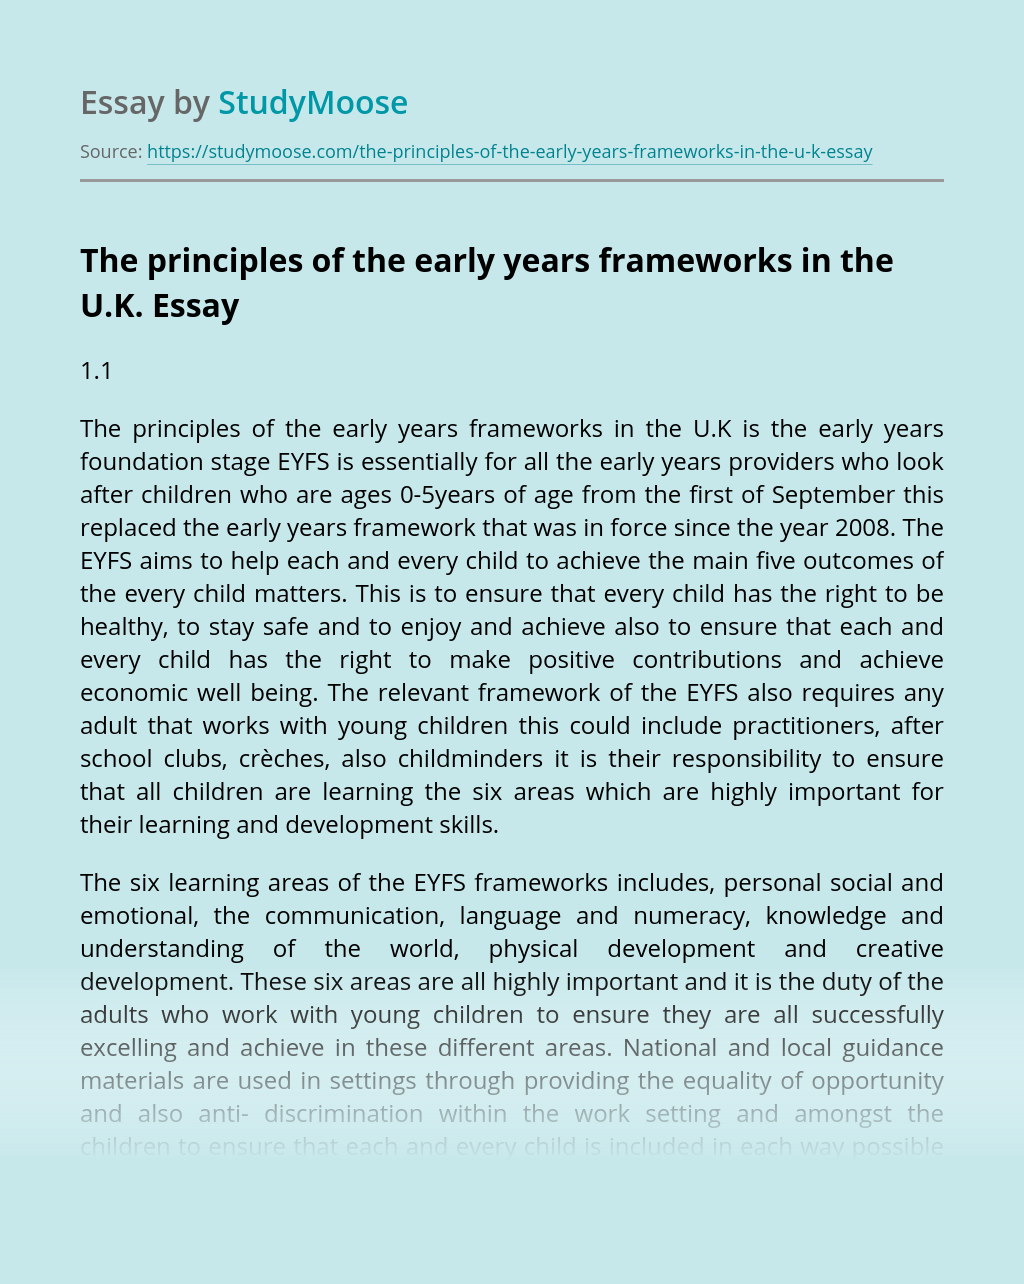 The principles of the early years frameworks in the U.K.